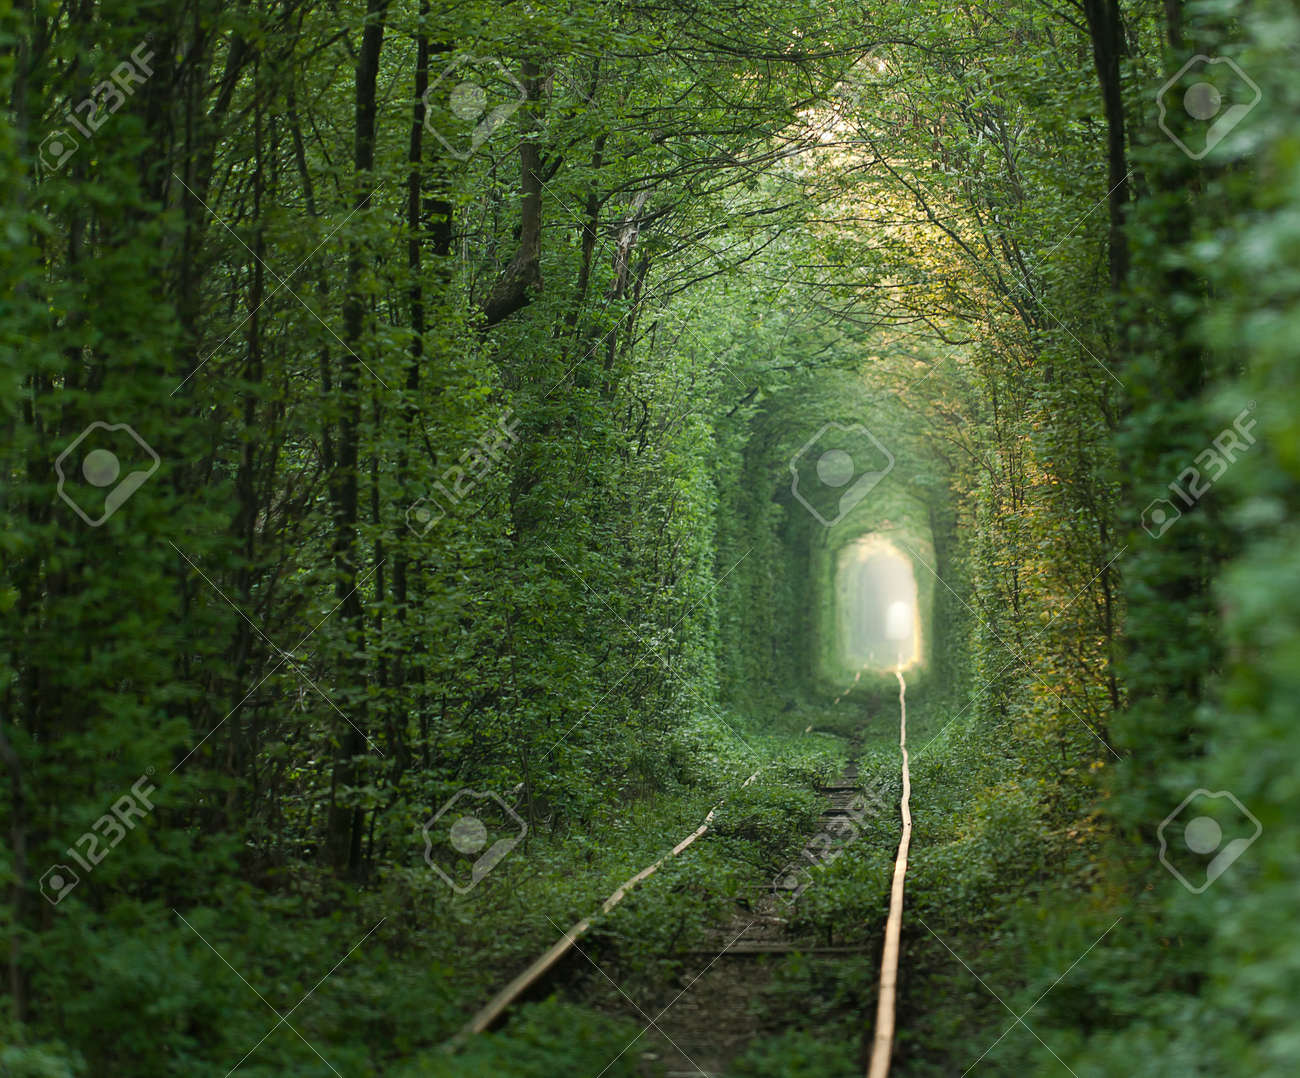 Natural tunnel of love formed by trees in Ukraine, Klevan - 15891744